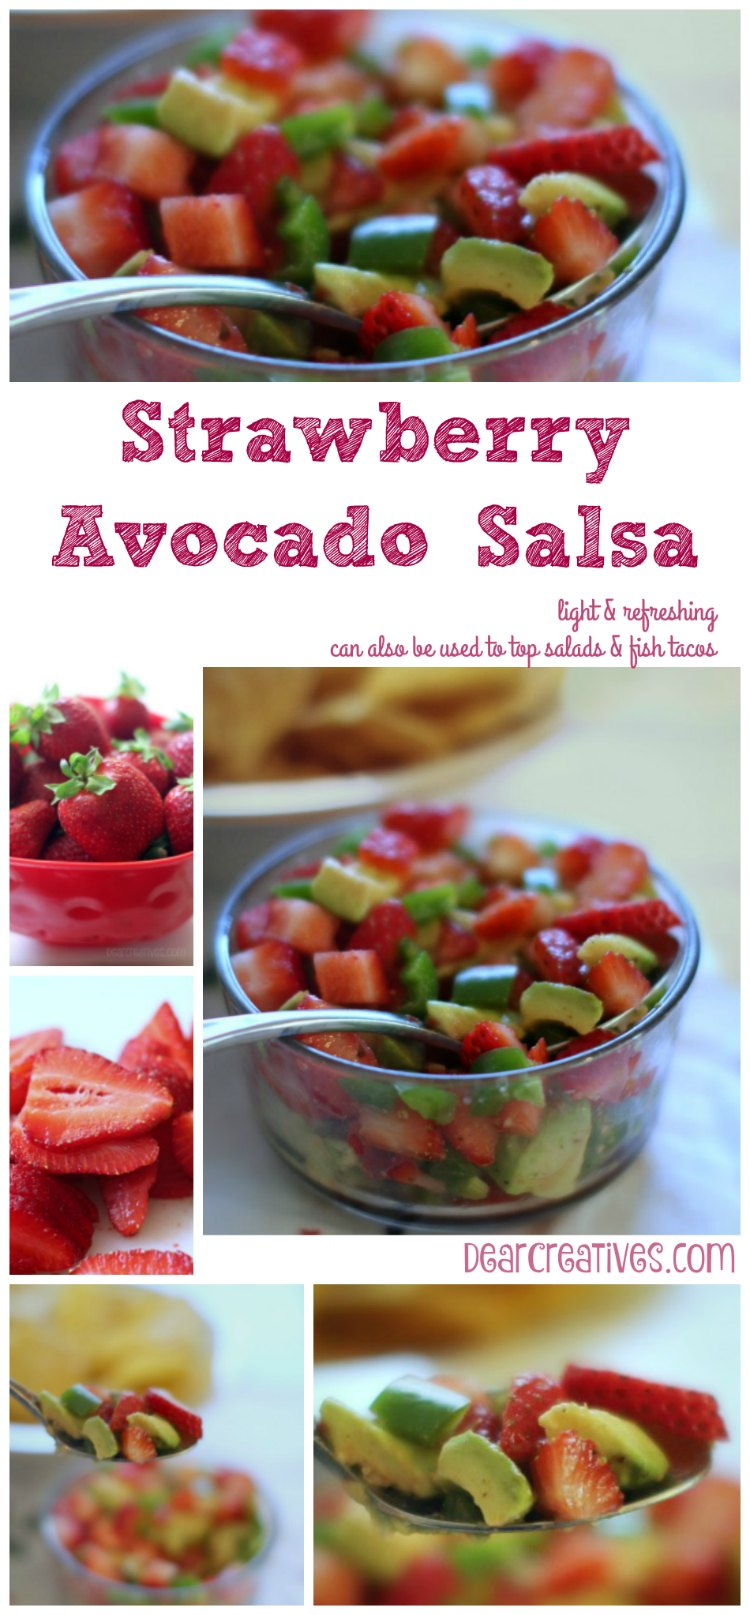 Strawberry Avocado Salsa | An easy appetizer recipe that can be made ahead of time | party appetizer recipe